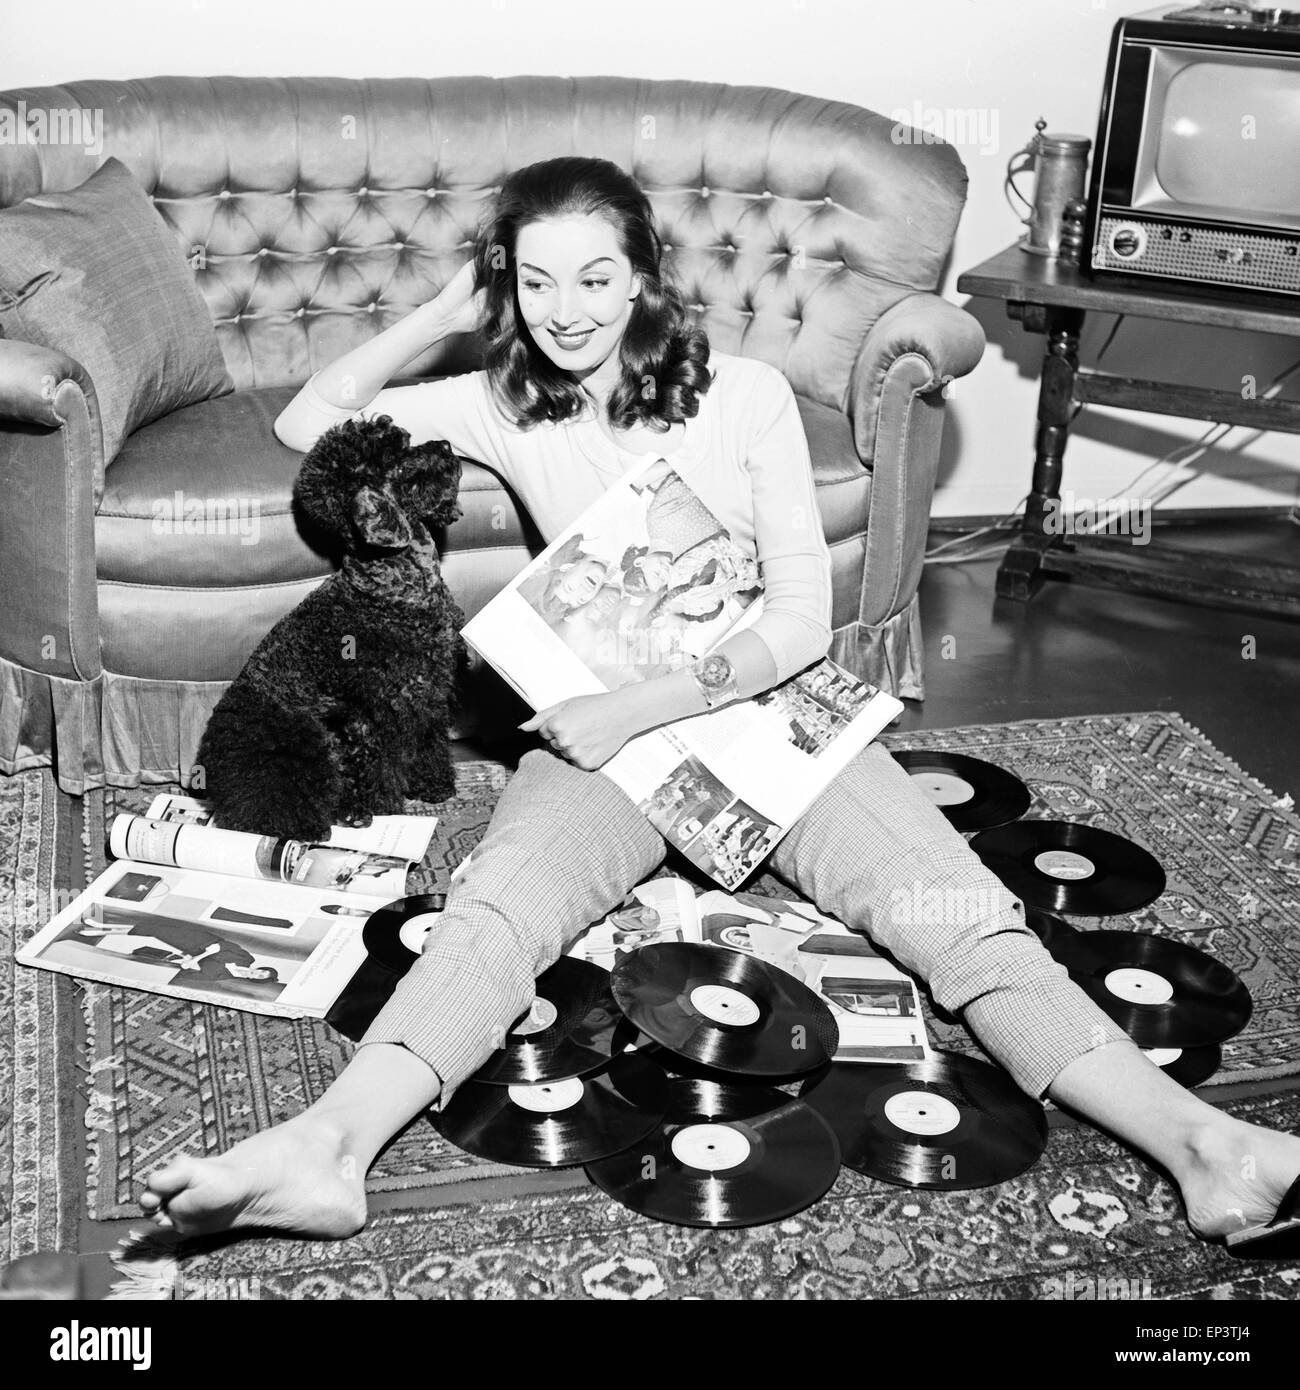 Shooting Wohnzimmer Woman And Dog 1950 39s Stock Photos And Woman And Dog 1950 39s